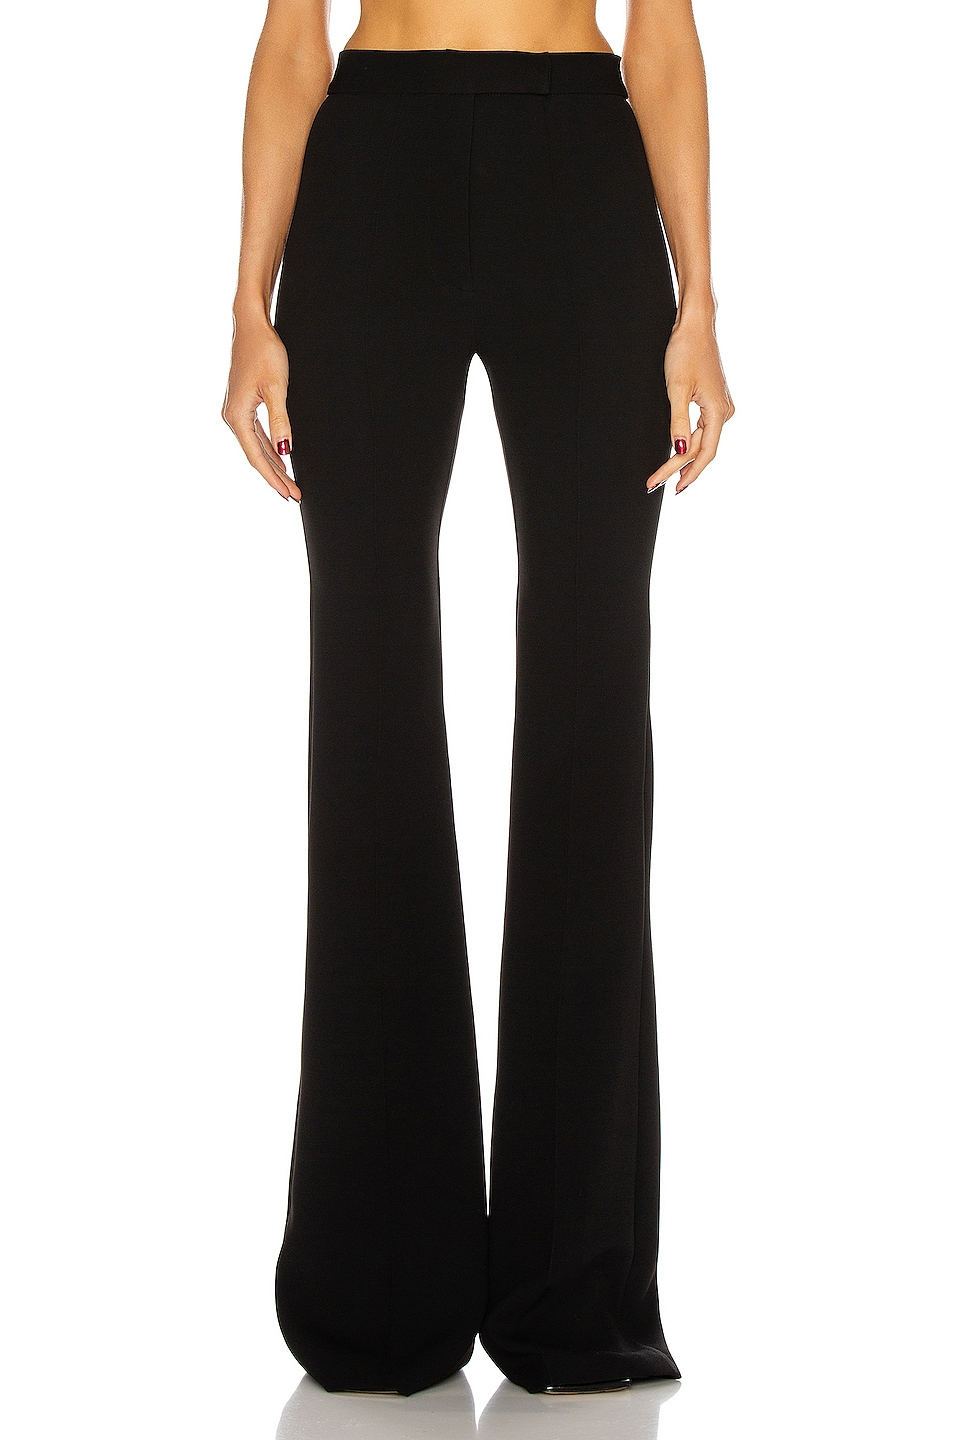 Image 1 of Alex Perry Rene Pant in Black